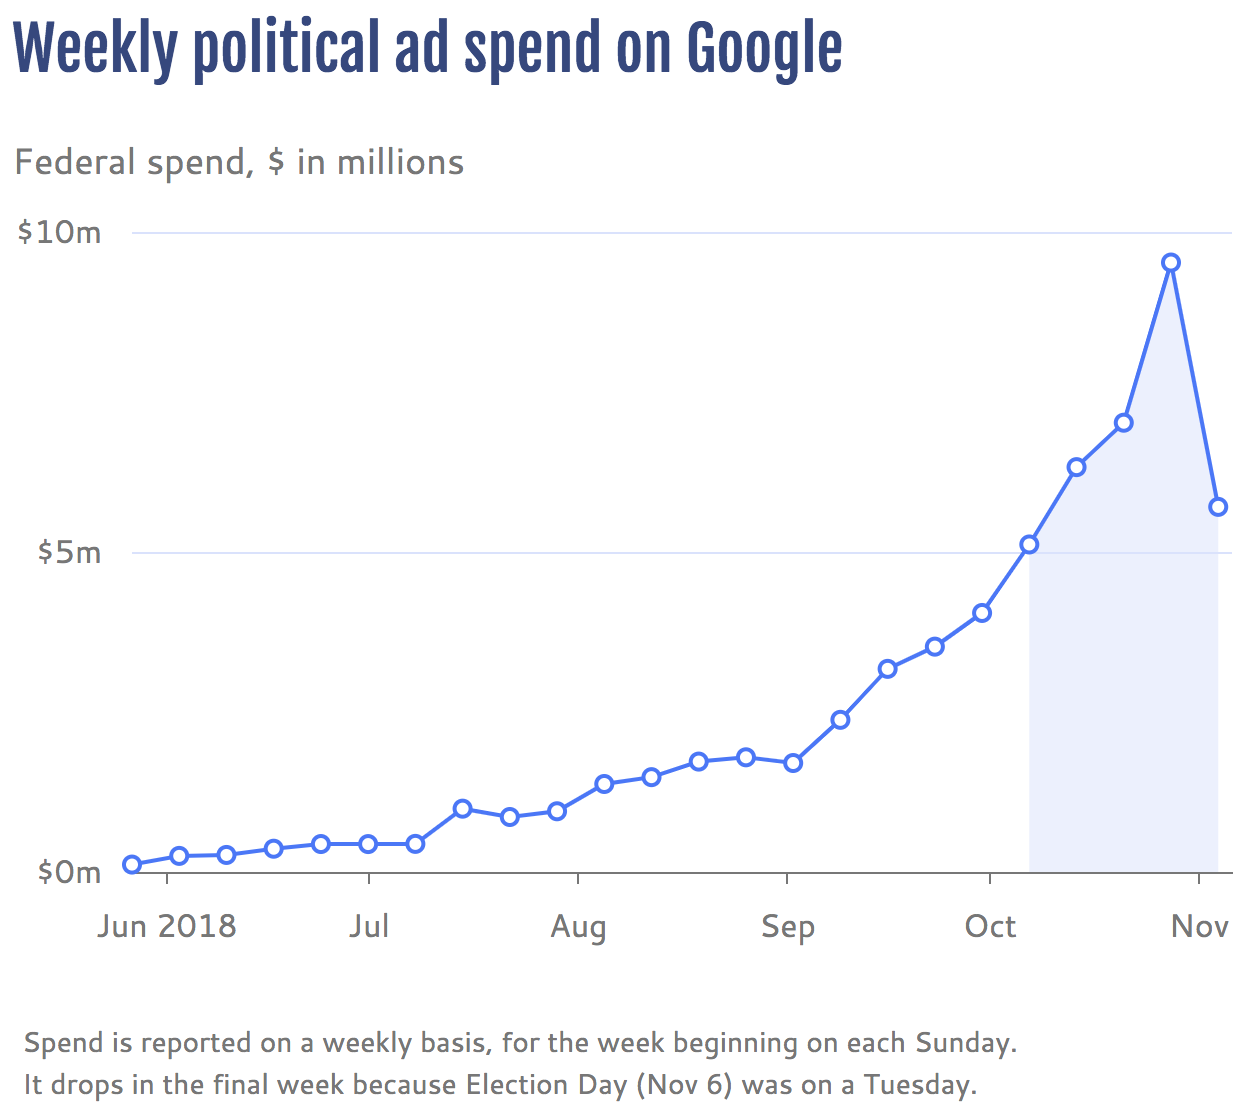 Weekly political ad spend on Google in 2018